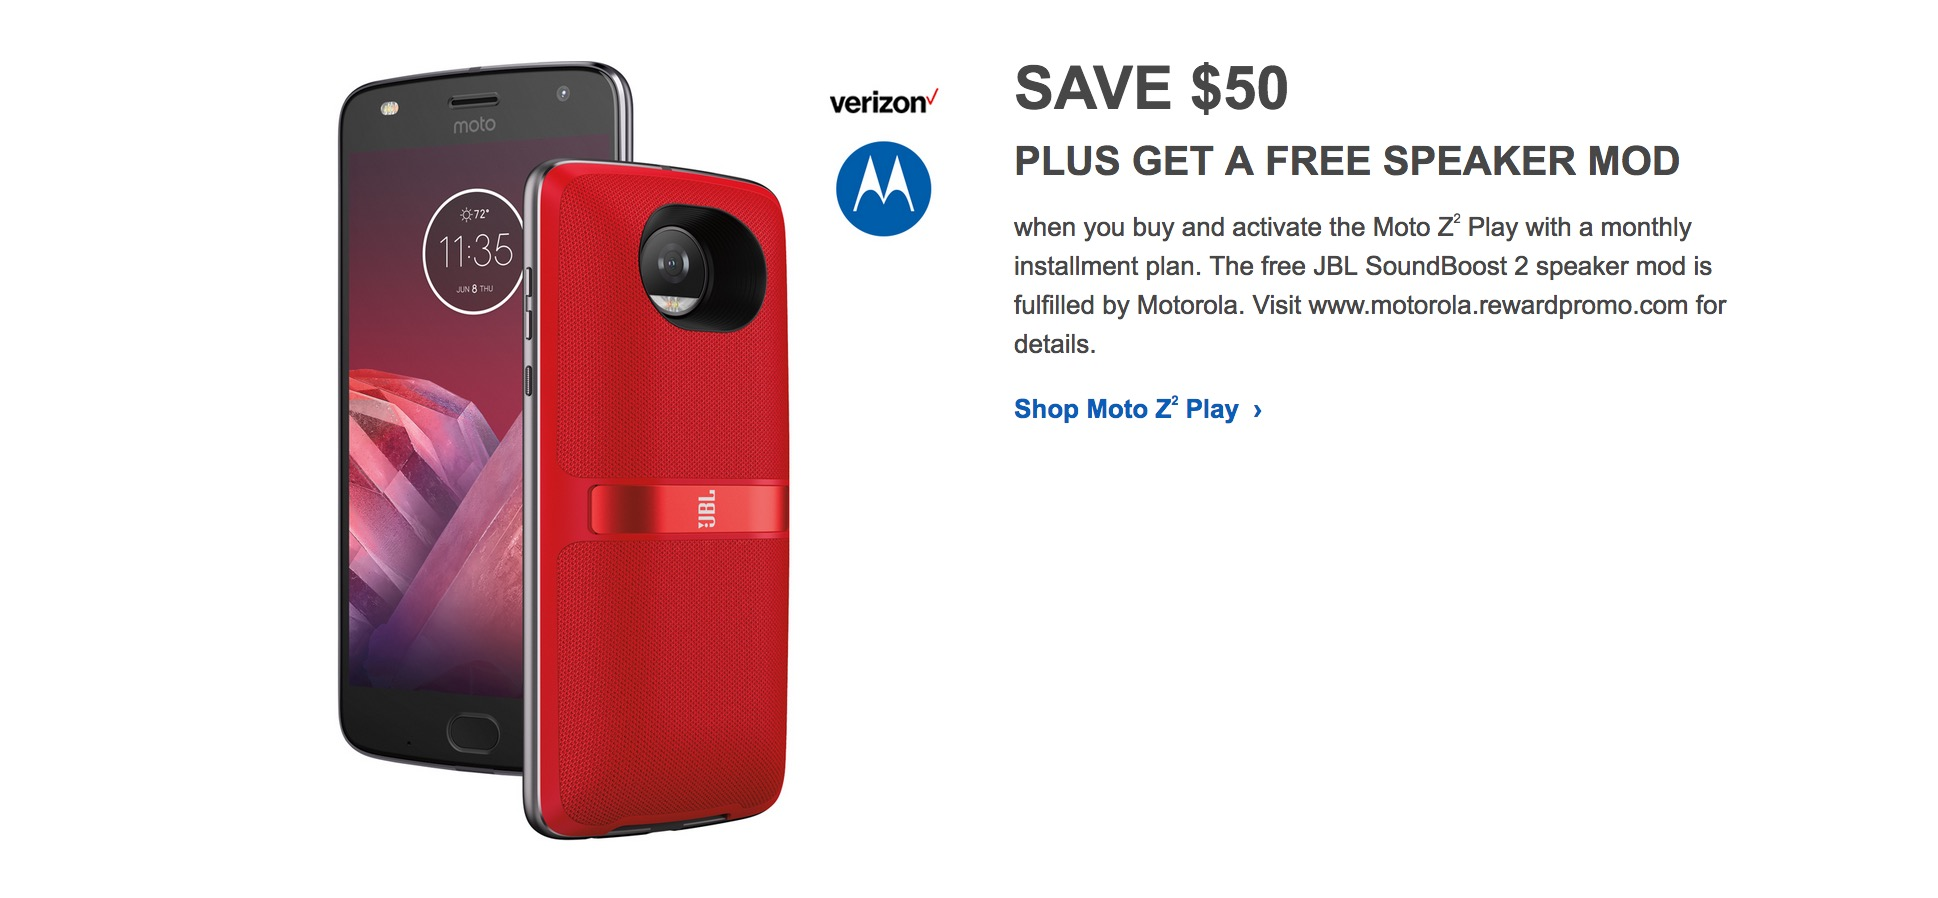 motorola jbl speaker. equipped verizon moto z2 play \u2014 the one that comes with 4gb ram/64gb storage for $50 off. further increasing value, you get a free jbl soundboost motorola jbl speaker